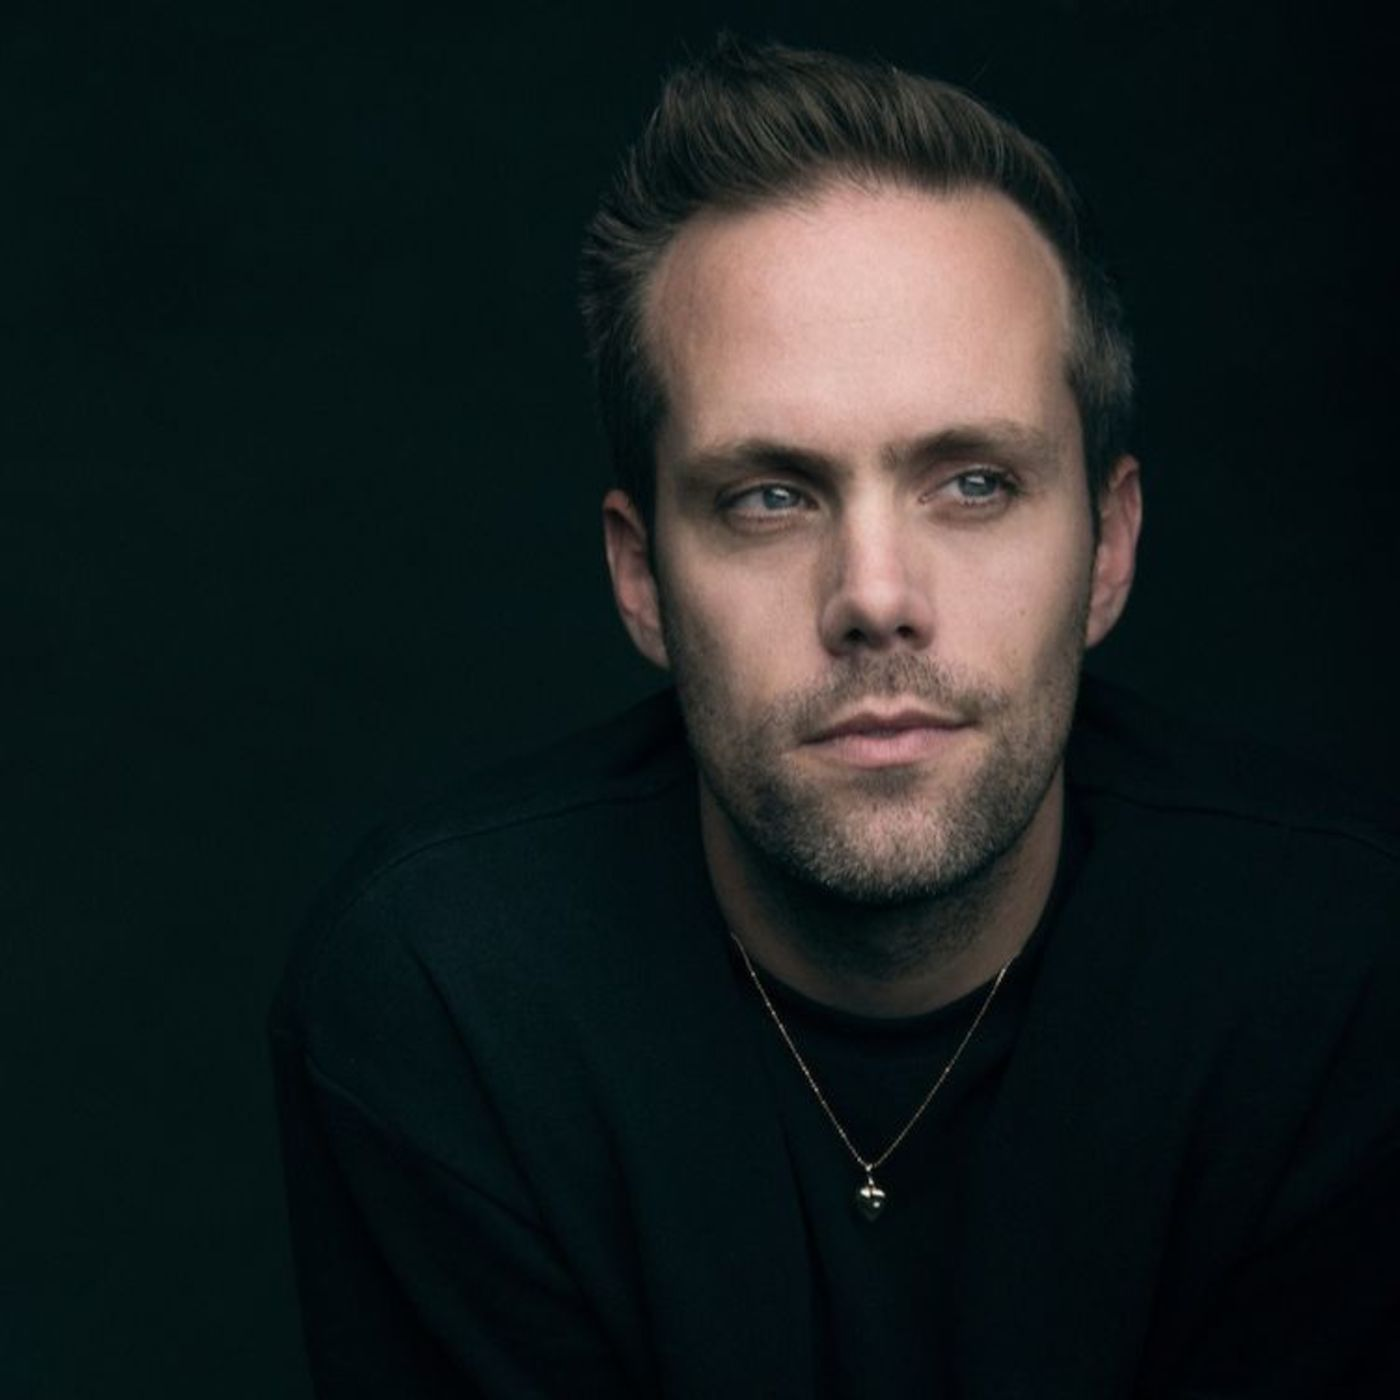 Justin Tranter, Songwriter: 'I'm just going to be honest...'